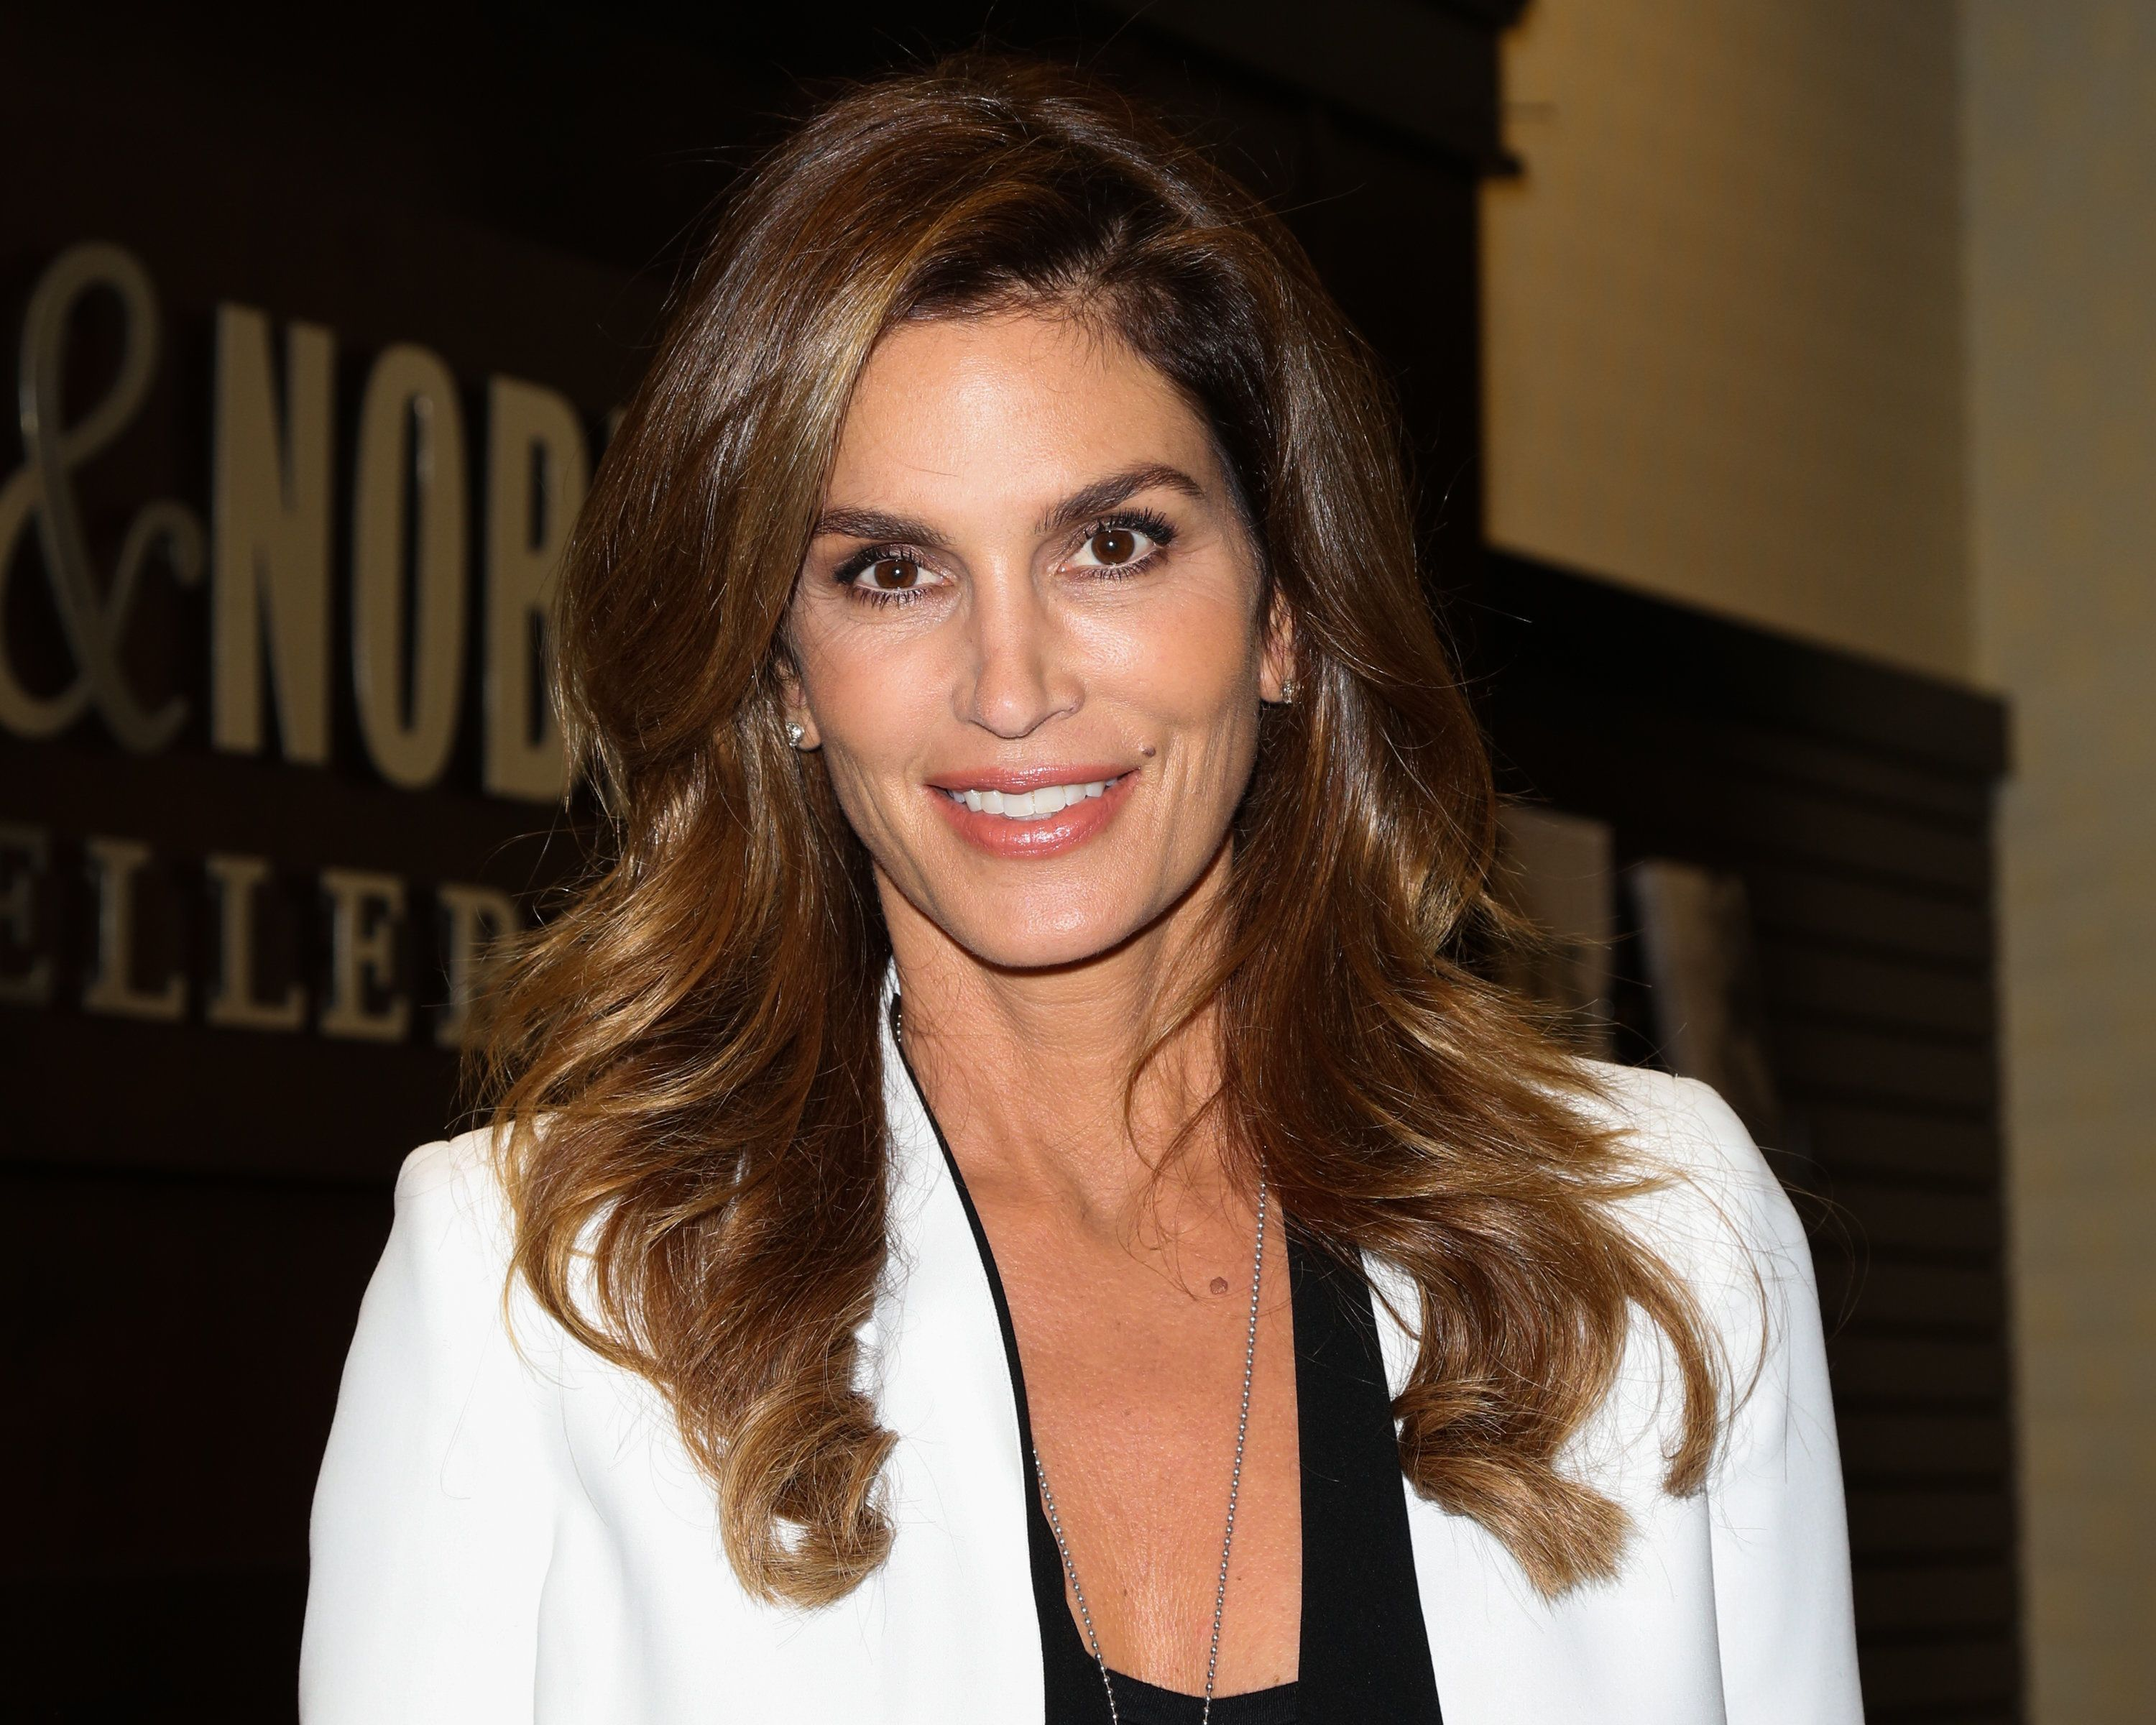 LOS ANGELES, CA - OCTOBER 15:  Fashion Model / TV Personality Cindy Crawford attends a book signing for her new book 'Becoming Cindy Crawford' at Barnes & Noble at The Grove on October 15, 2015 in Los Angeles, California.  (Photo by Paul Archuleta/FilmMagic)